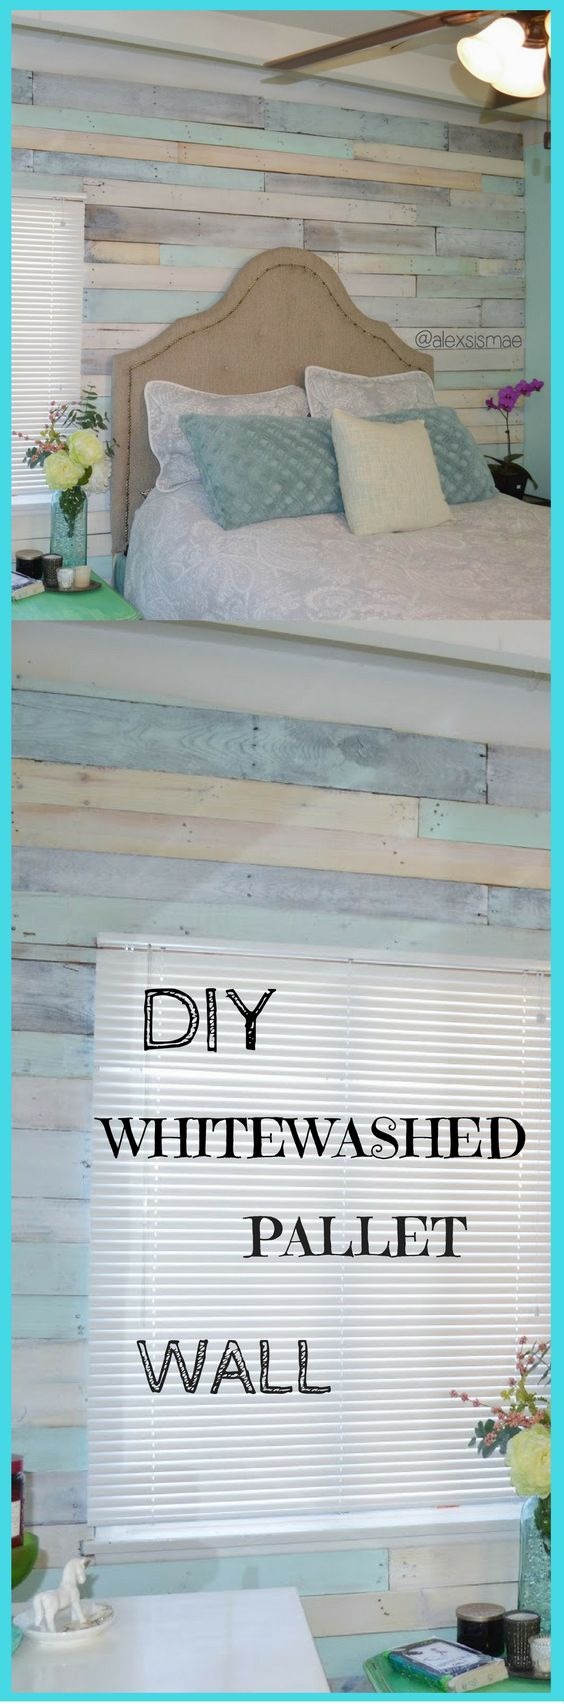 DIY Whitewashed Pallet Wall.